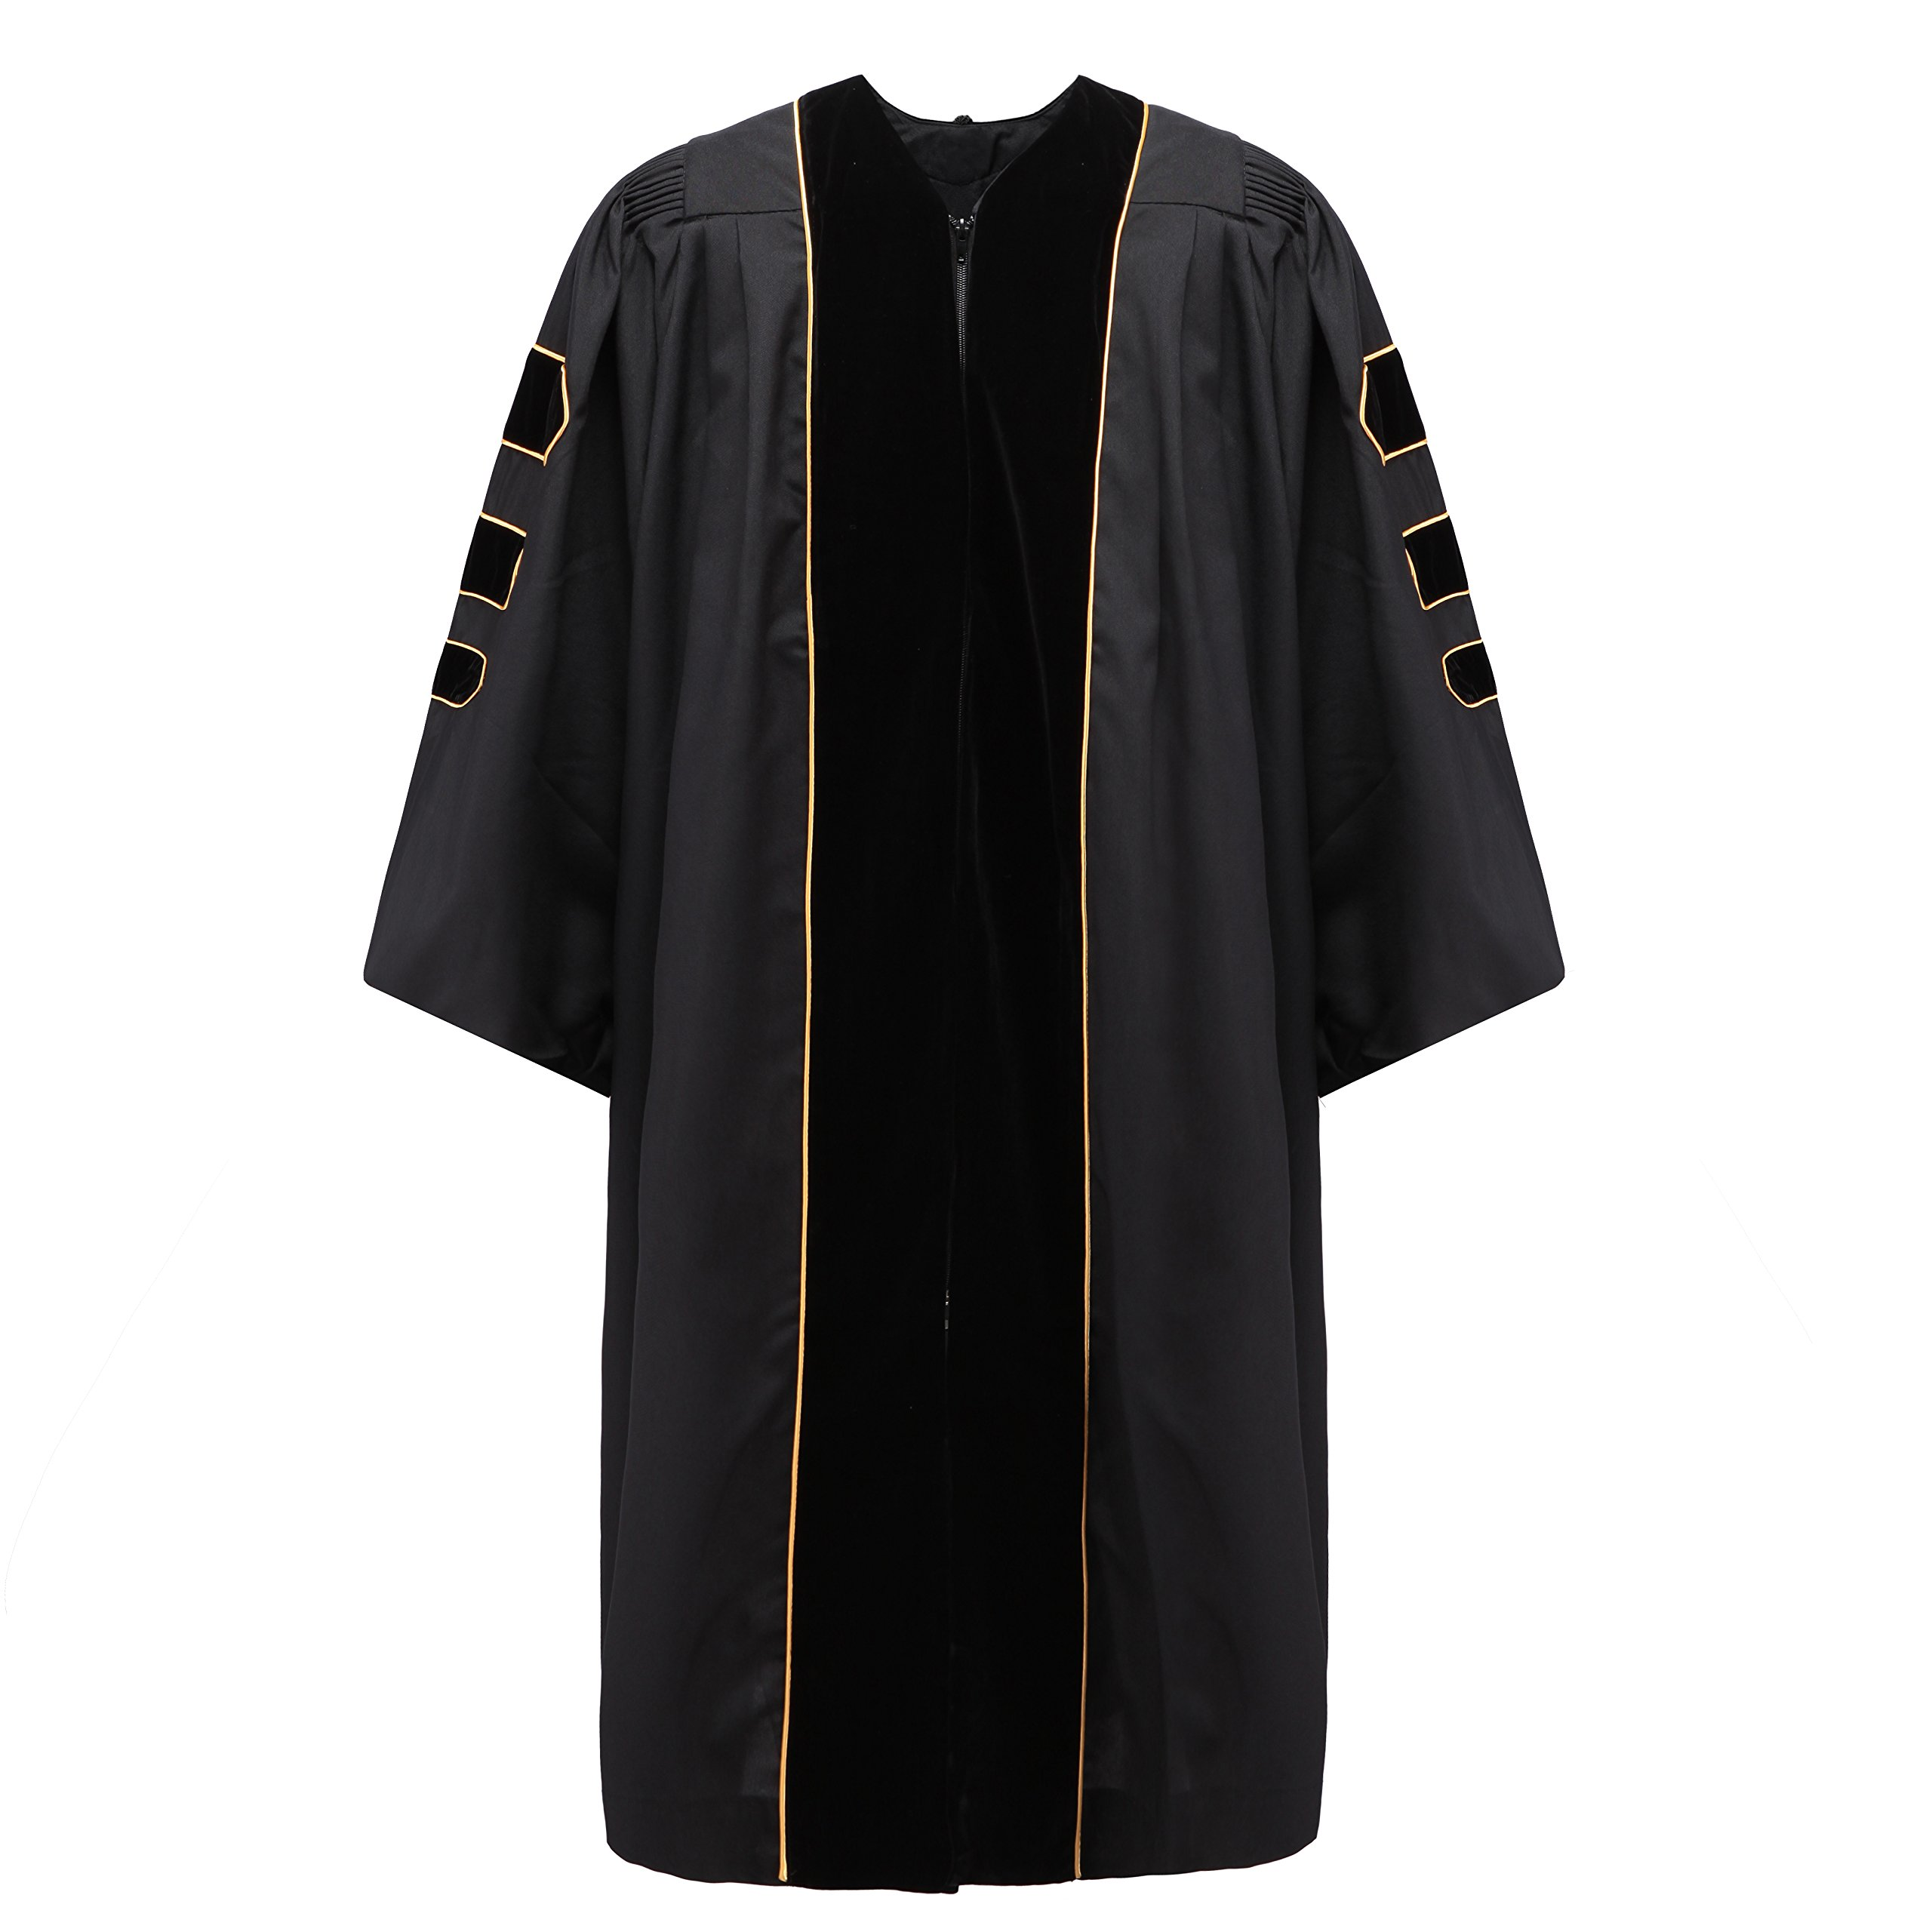 Robe Depot Unisex Deluxe Doctoral Graduation Gown With Gold Piping, Black Fabric and Black Velvet,57